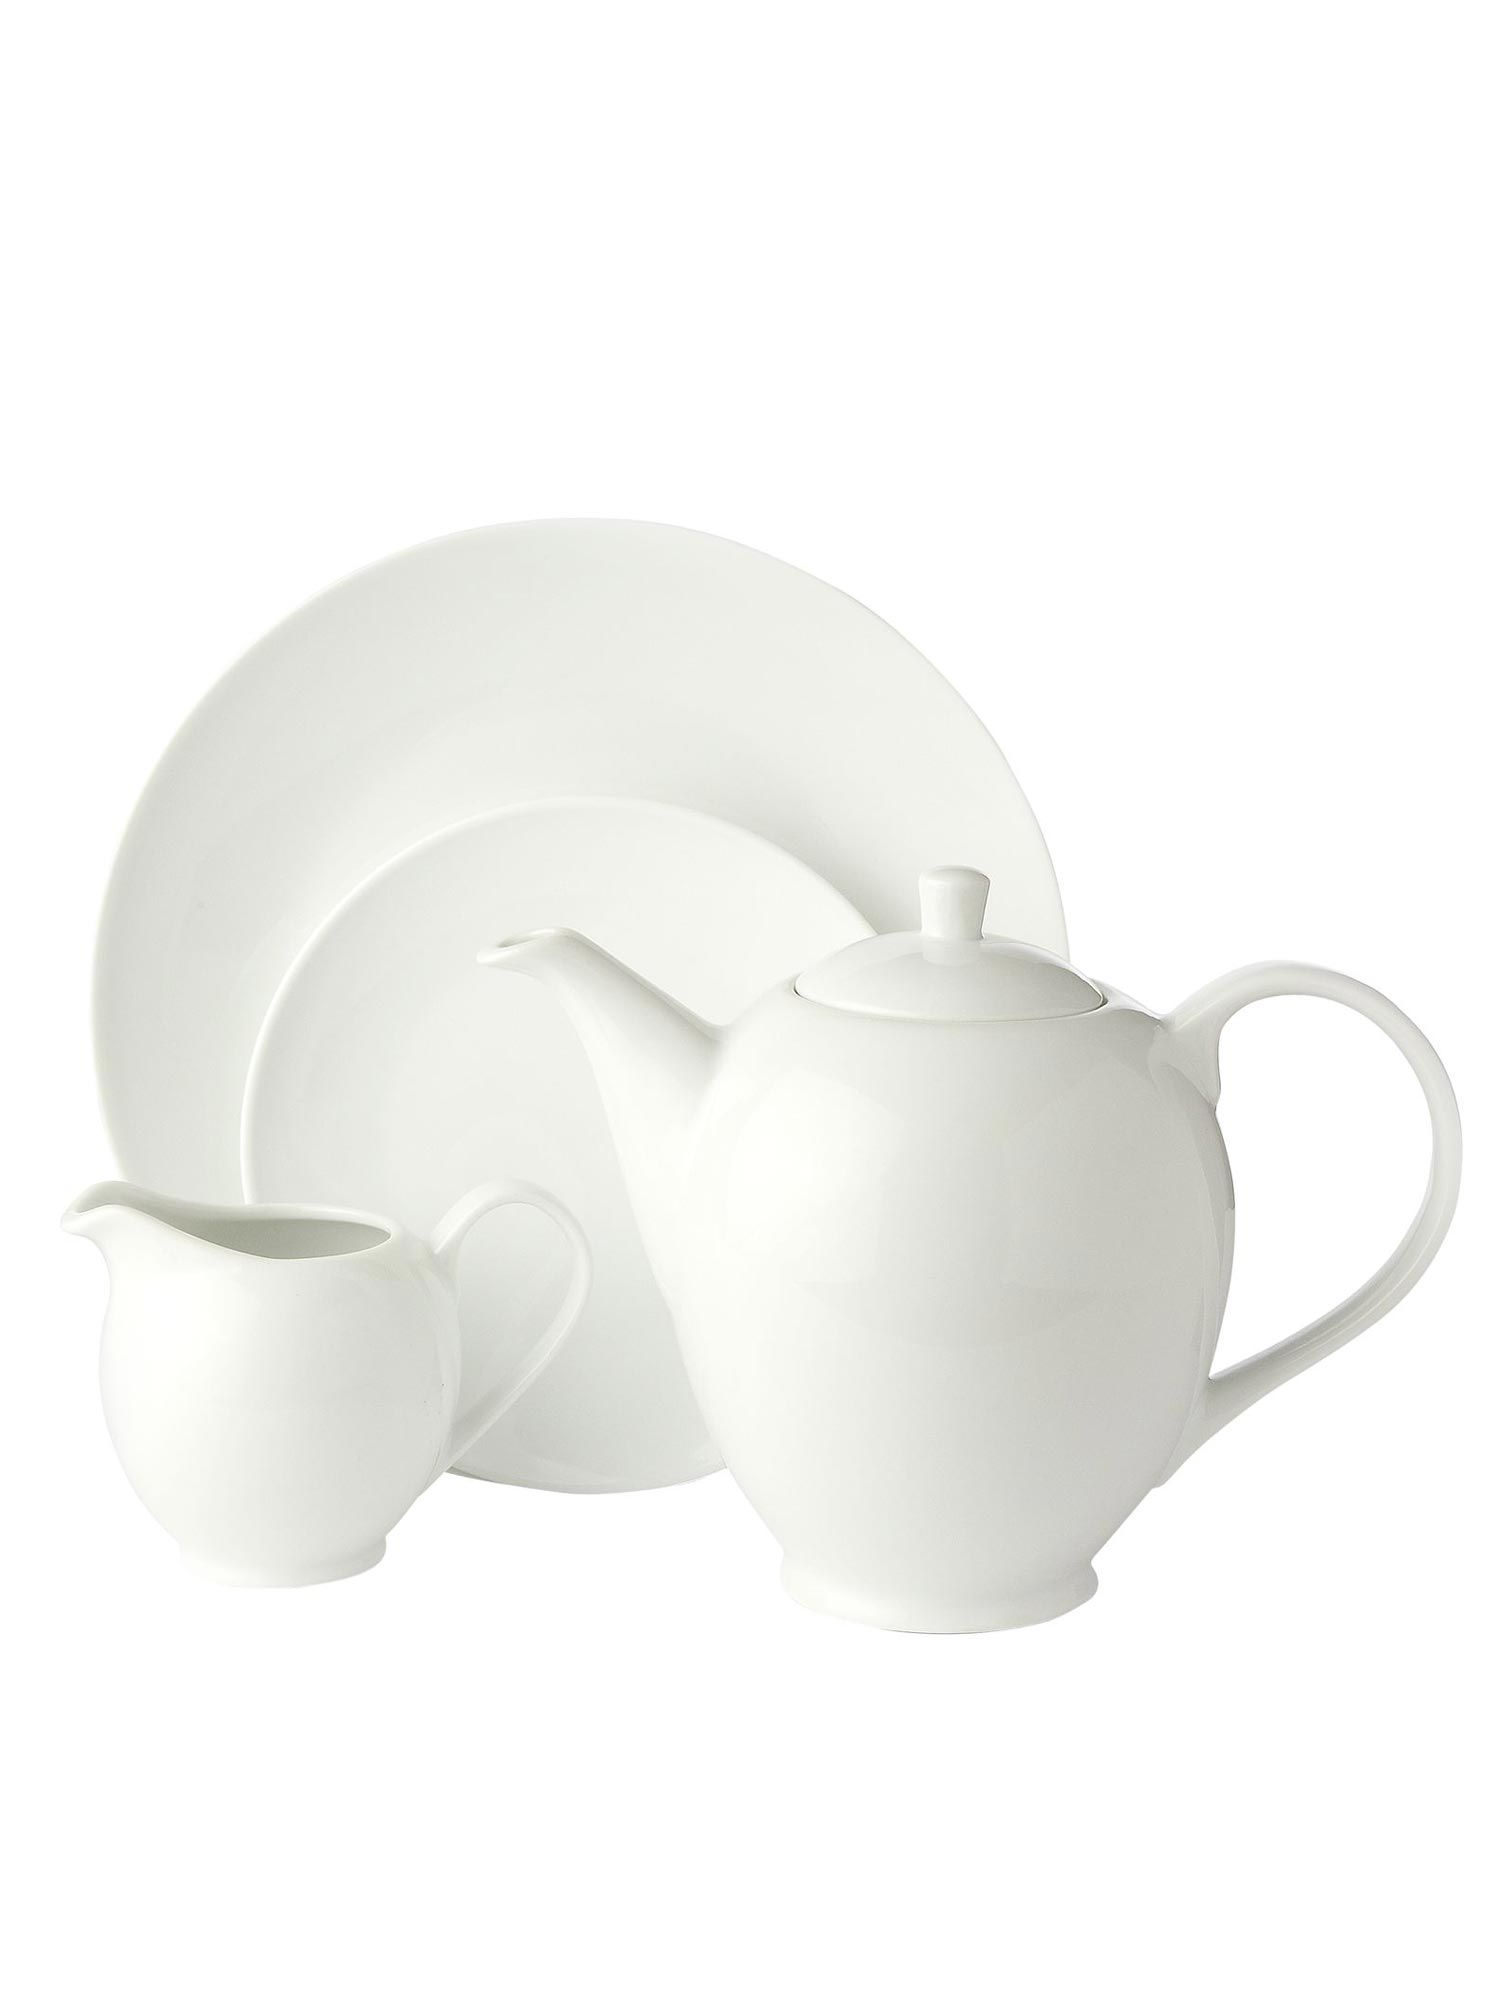 Beau coupe dinnerware